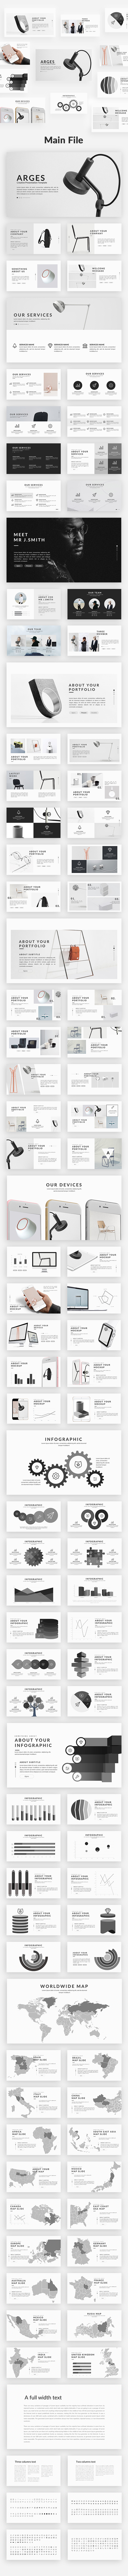 Arges - Minimal Powerpoint Template - Creative PowerPoint Templates